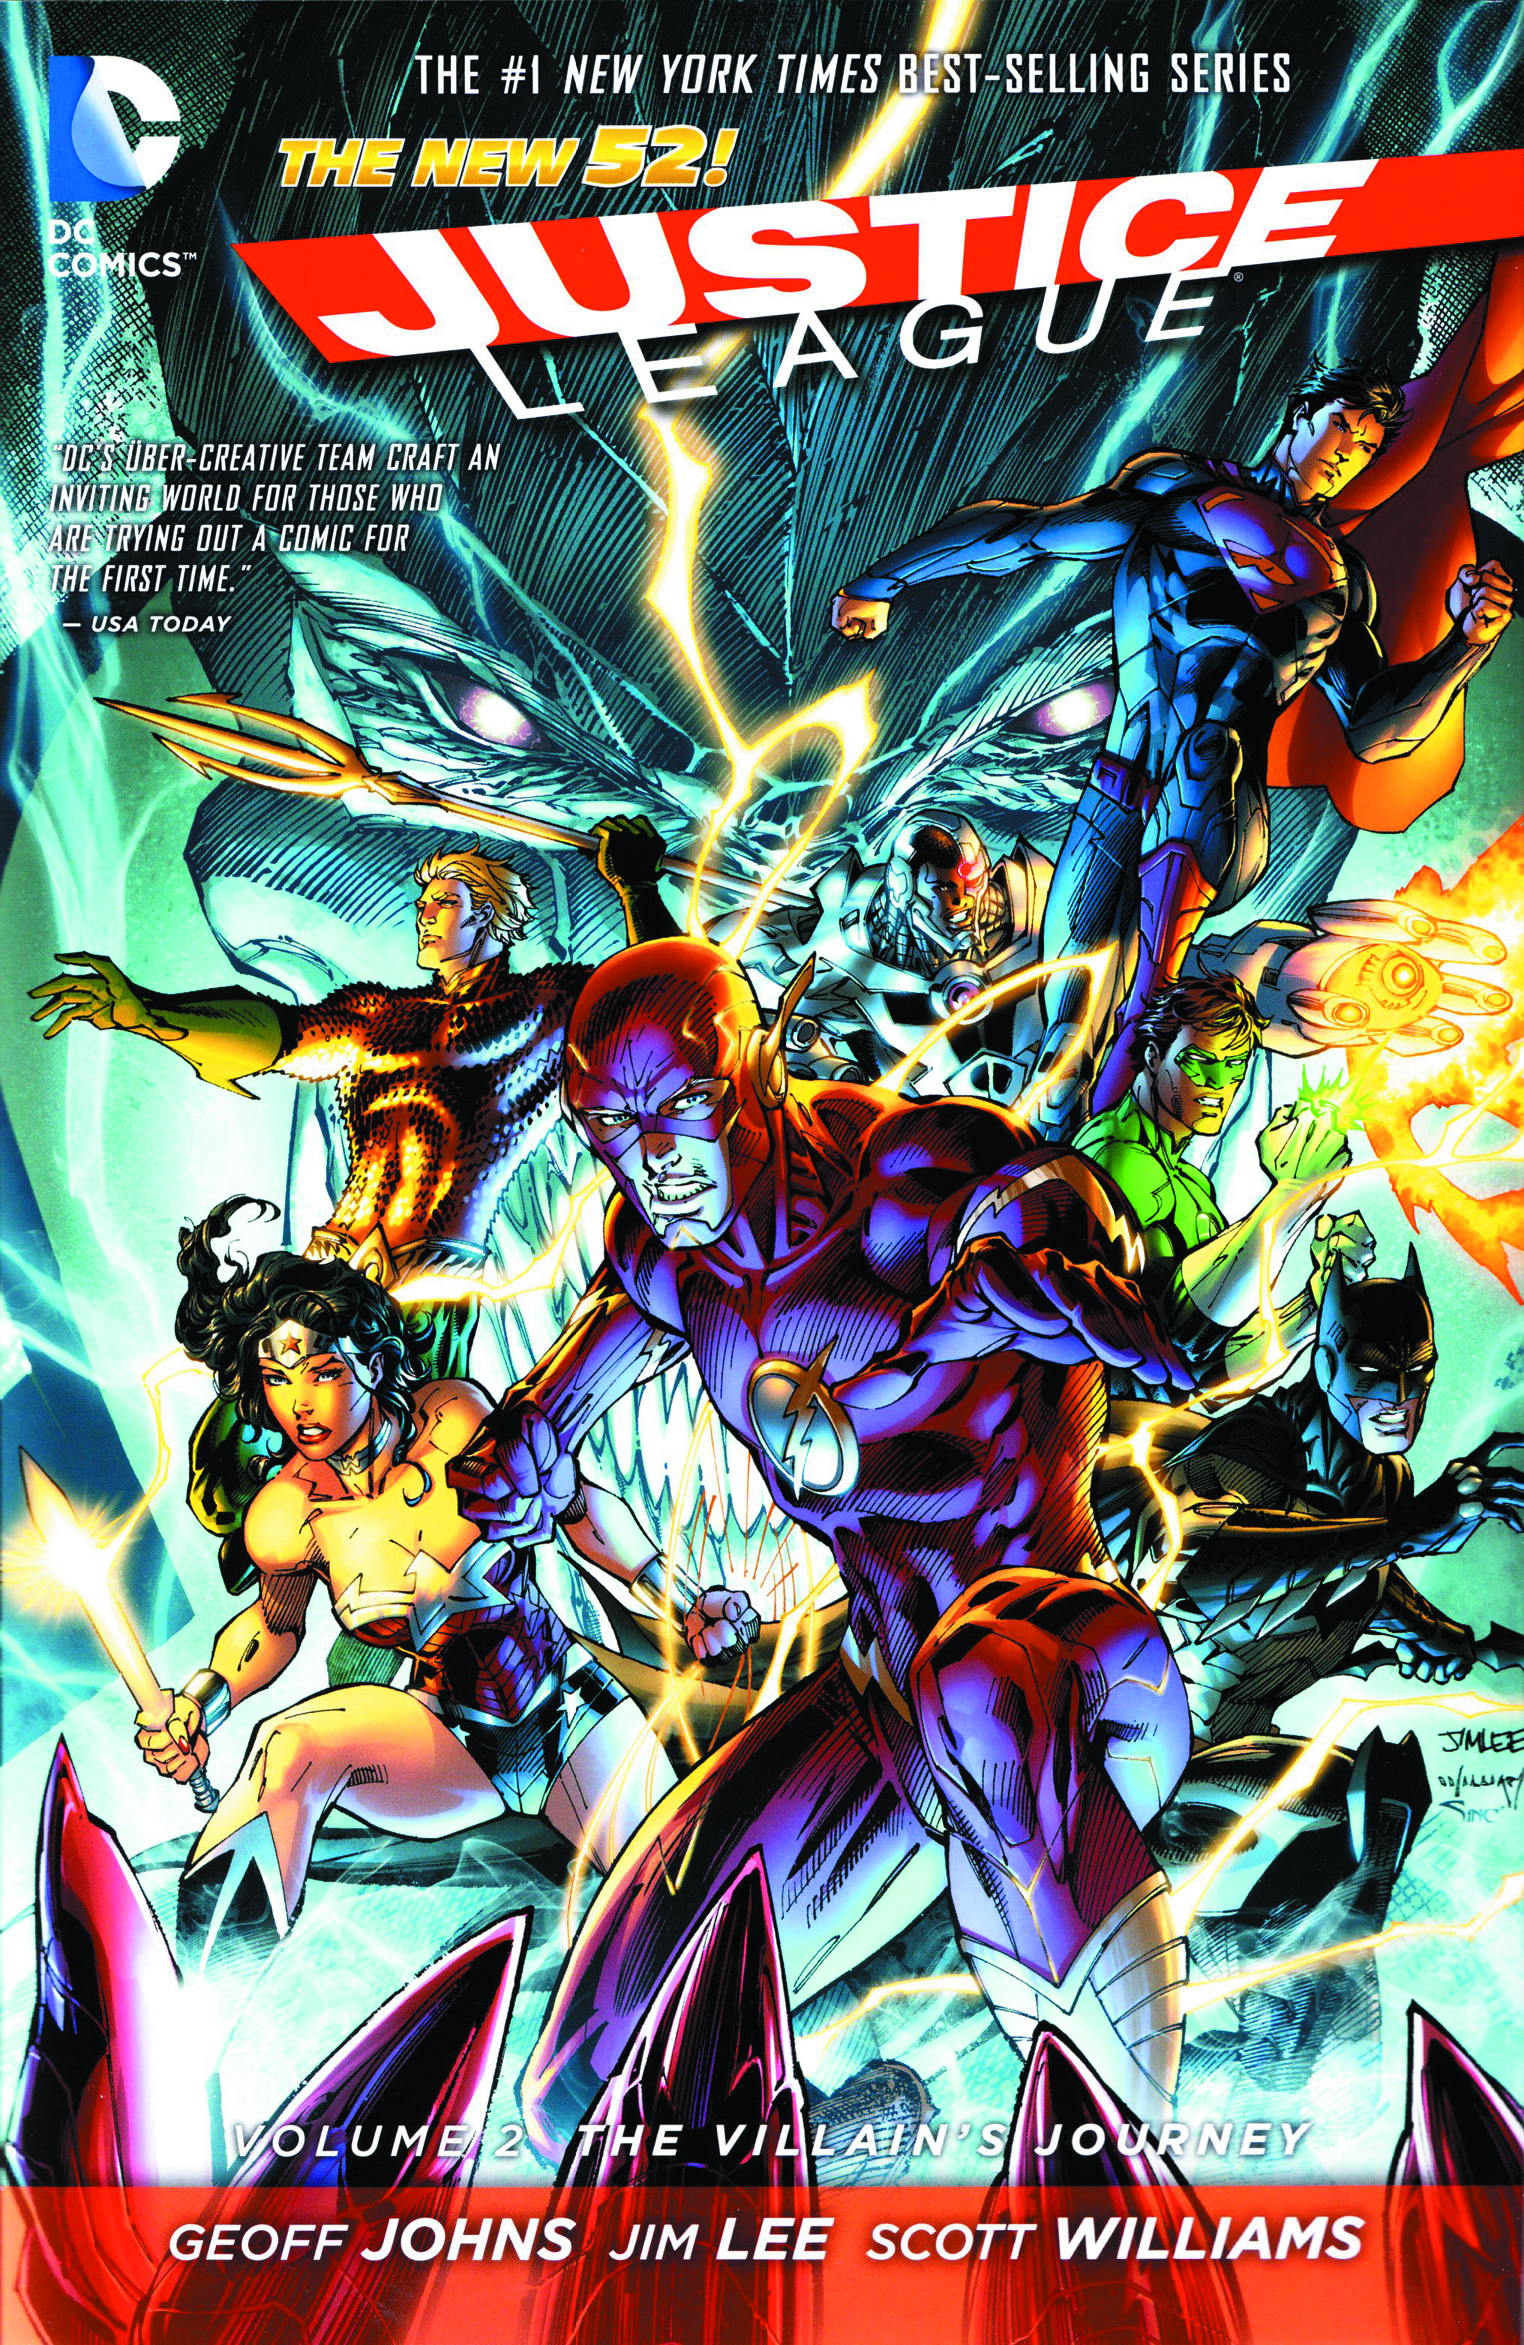 JUSTICE LEAGUE HC VOL 02 THE VILLAINS JOURNEY